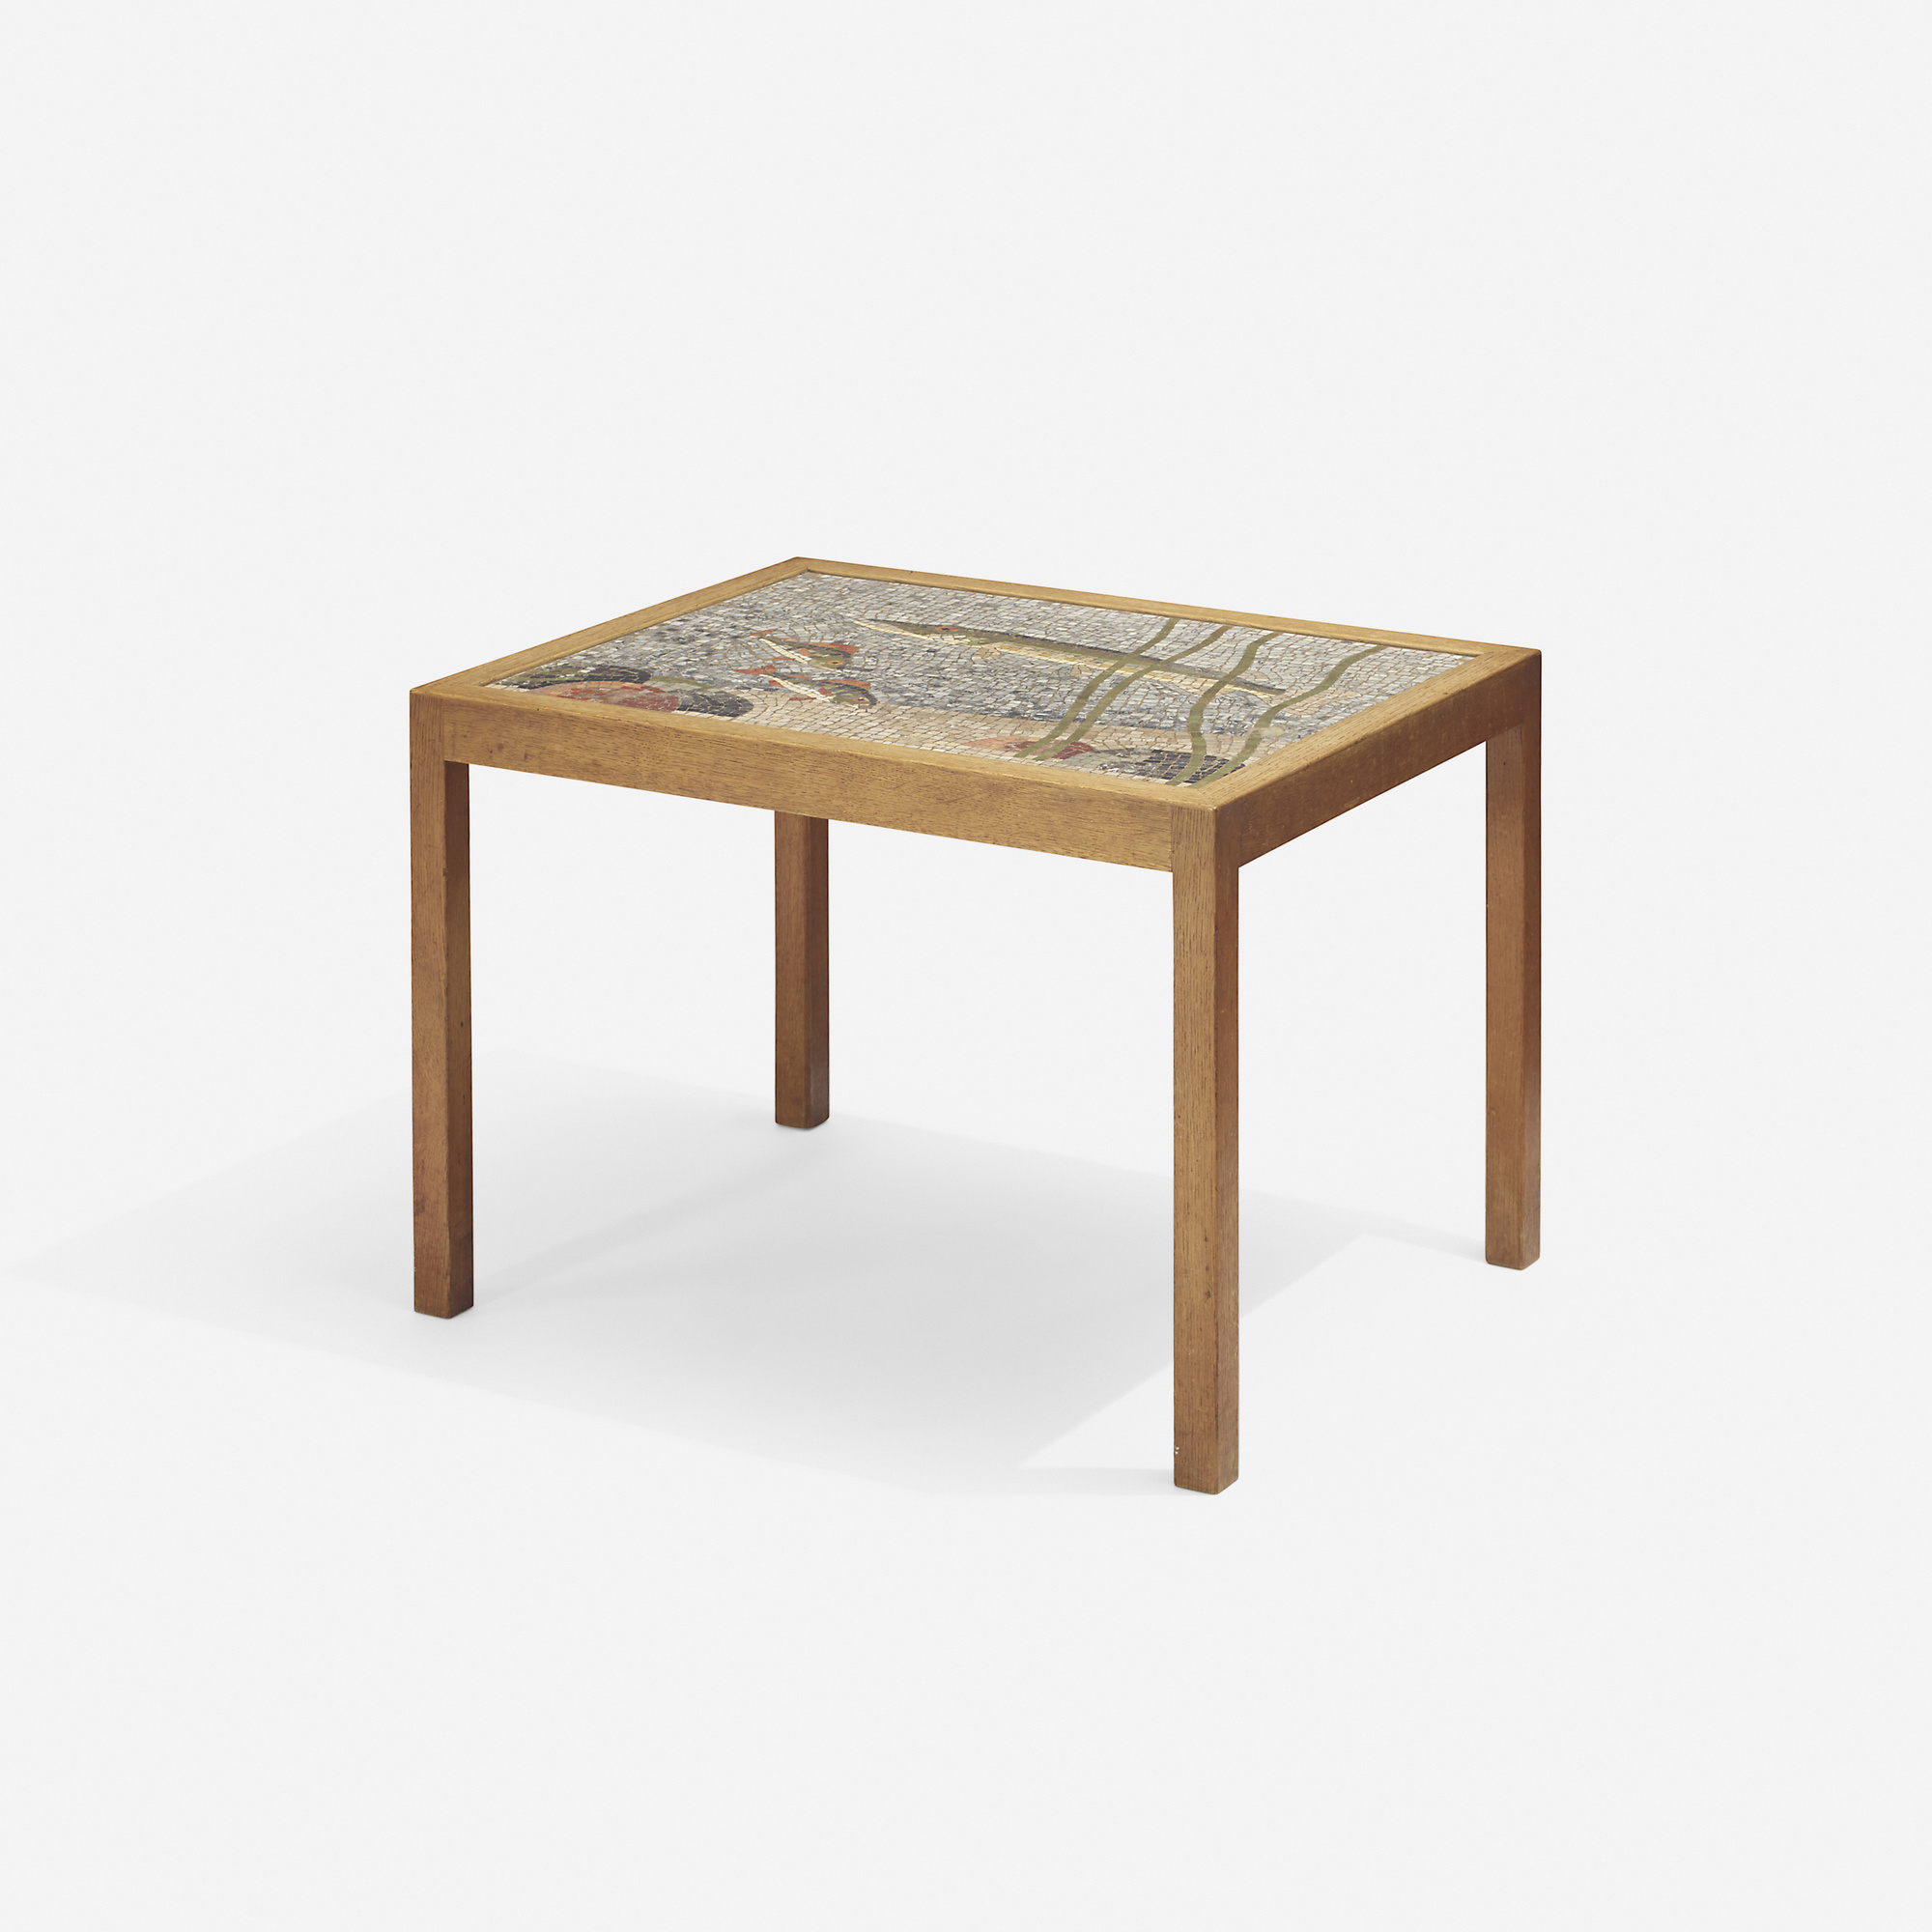 275: Danish / table (1 of 3)